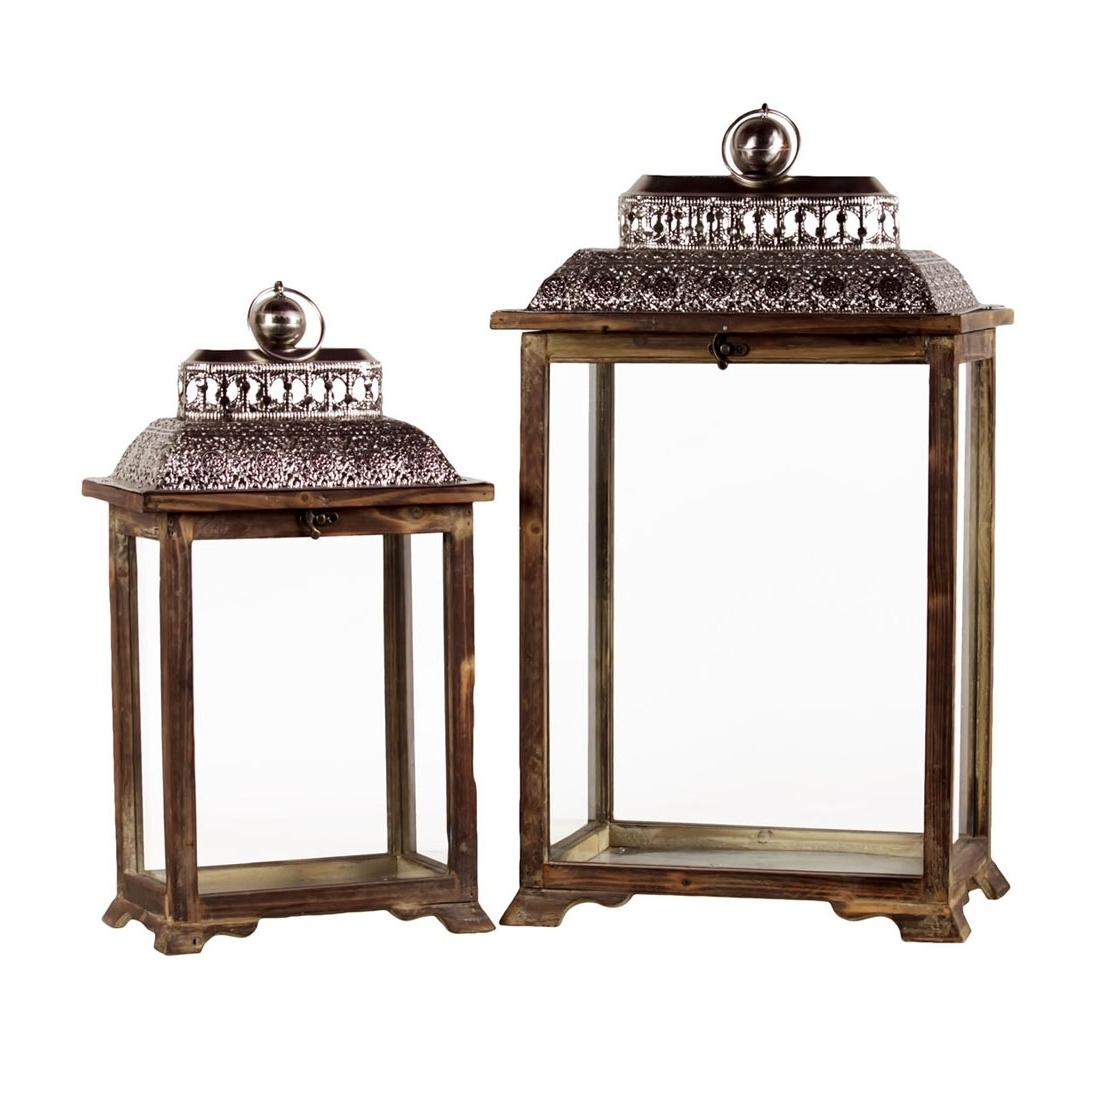 Outdoor Lanterns Within Favorite Set Of Wooden Outdoor Lanterns – Patio Furniture Co (View 16 of 20)